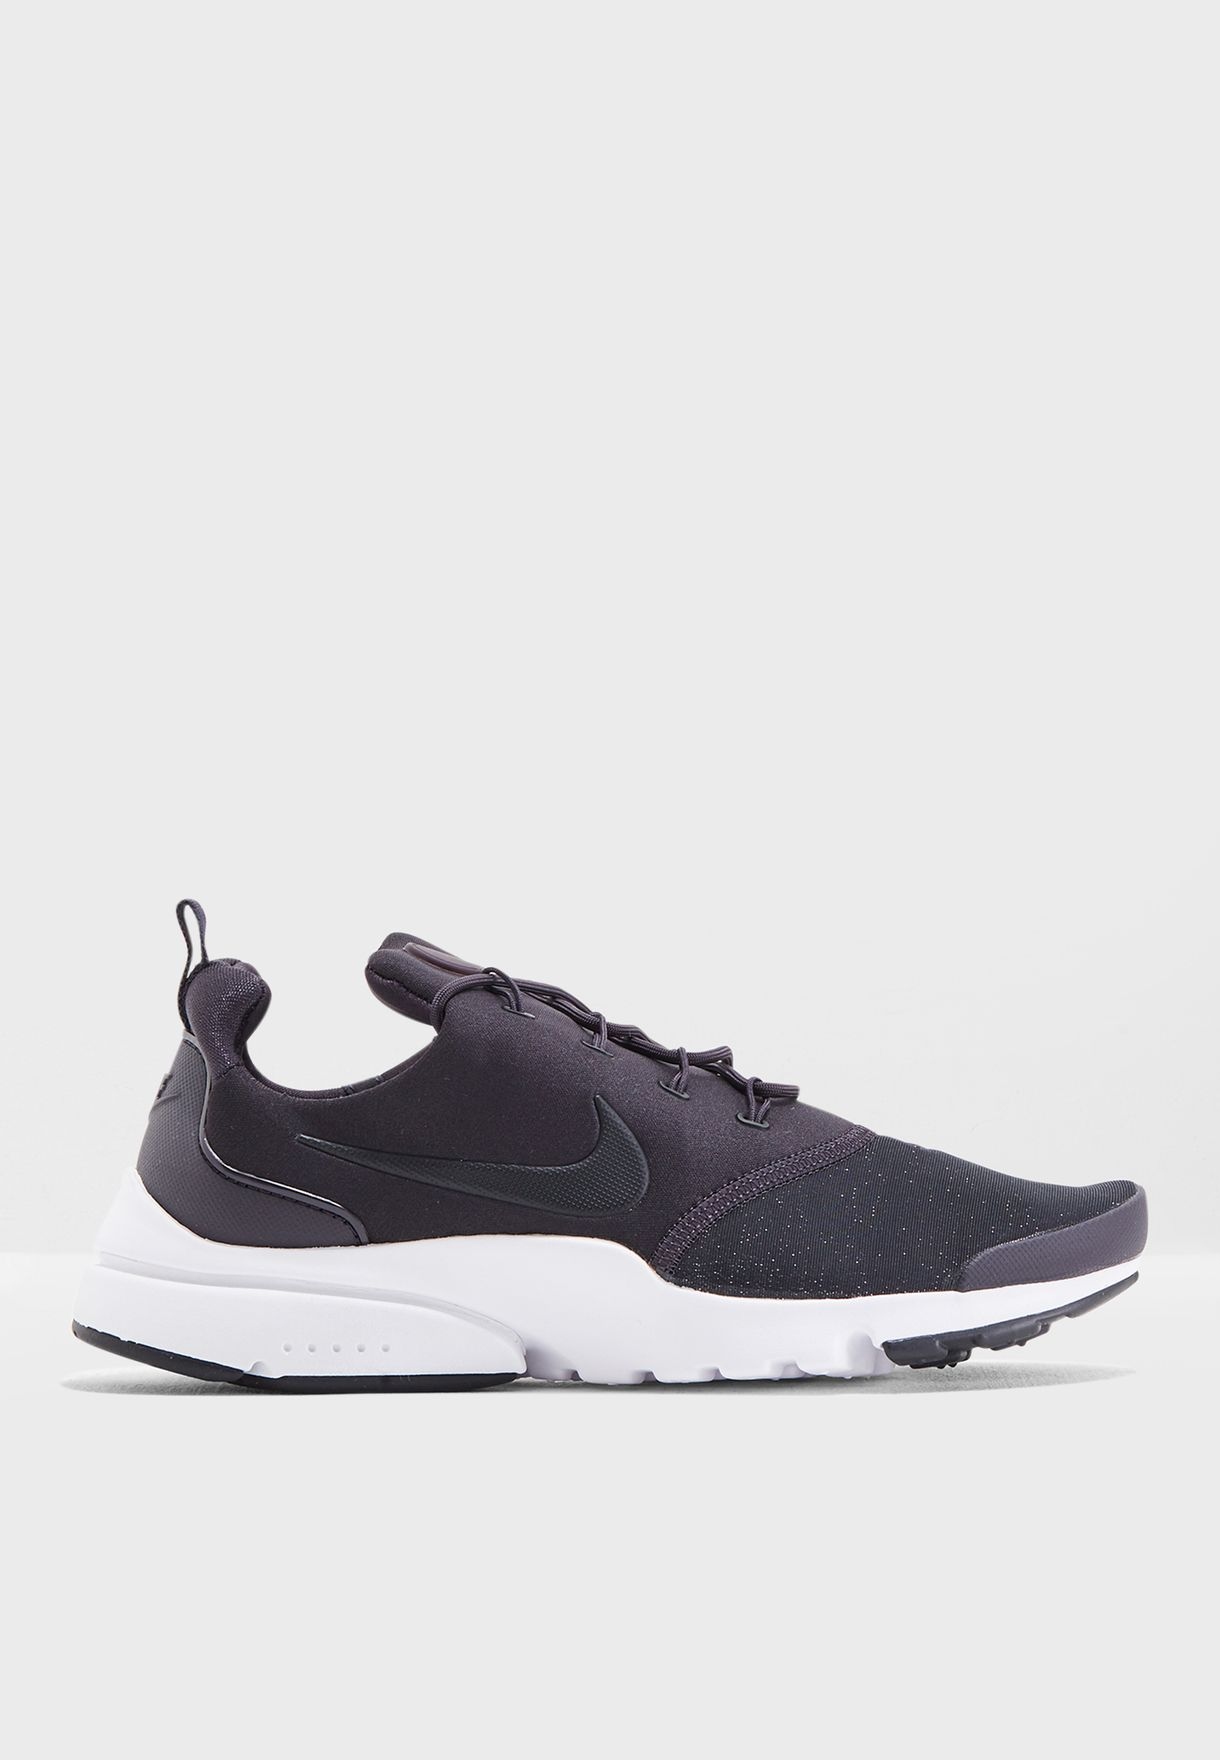 6e6f2a6ada61 Shop Nike black Presto Fly PRM AO3156-001 for Women in UAE ...